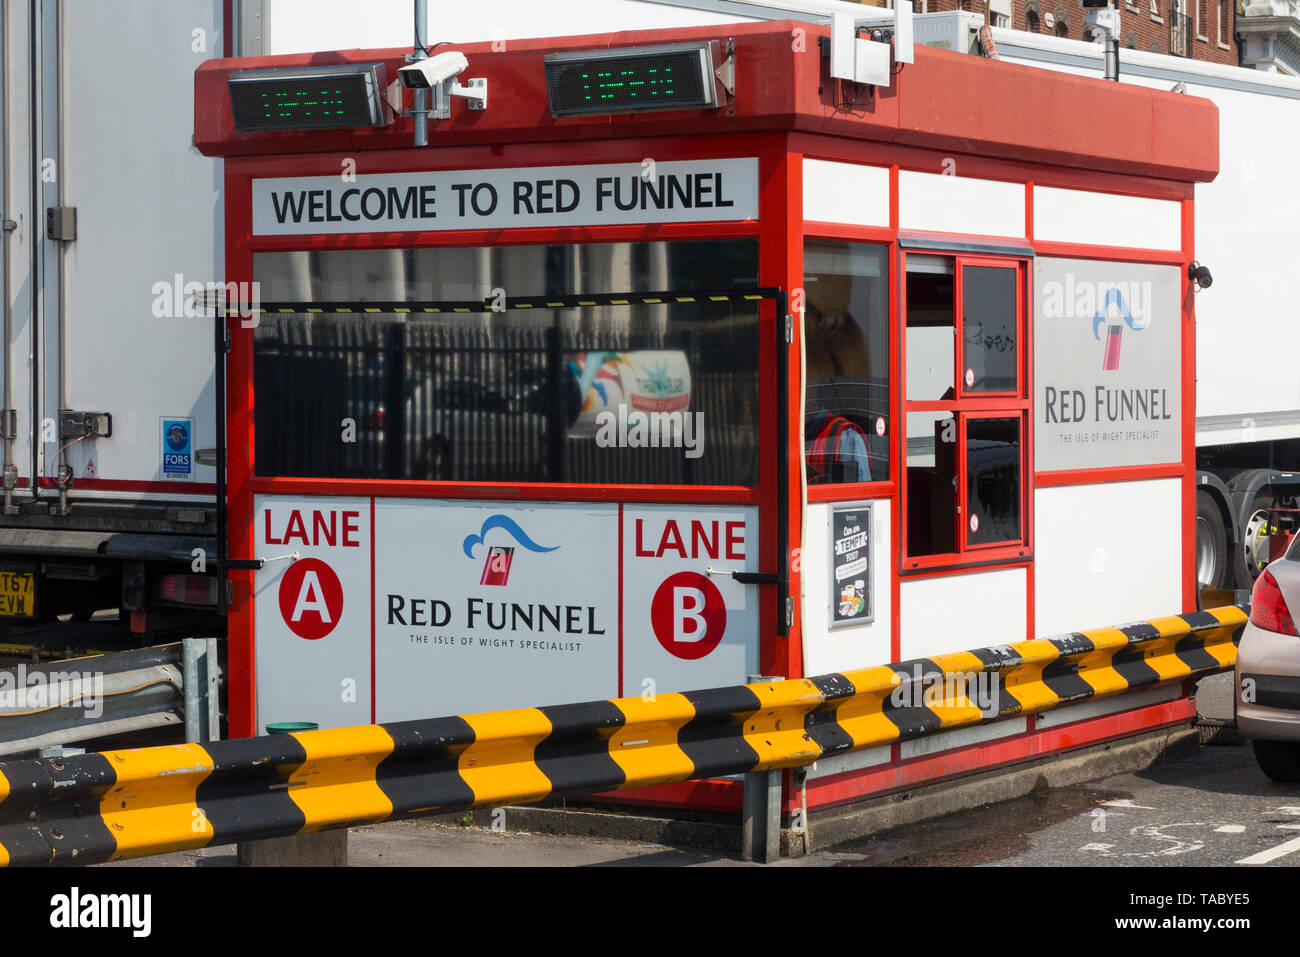 Red funnel ferries booth to arrive cars for red funnel ferries departing the port for the Isle of Wight. (99) Stock Photo